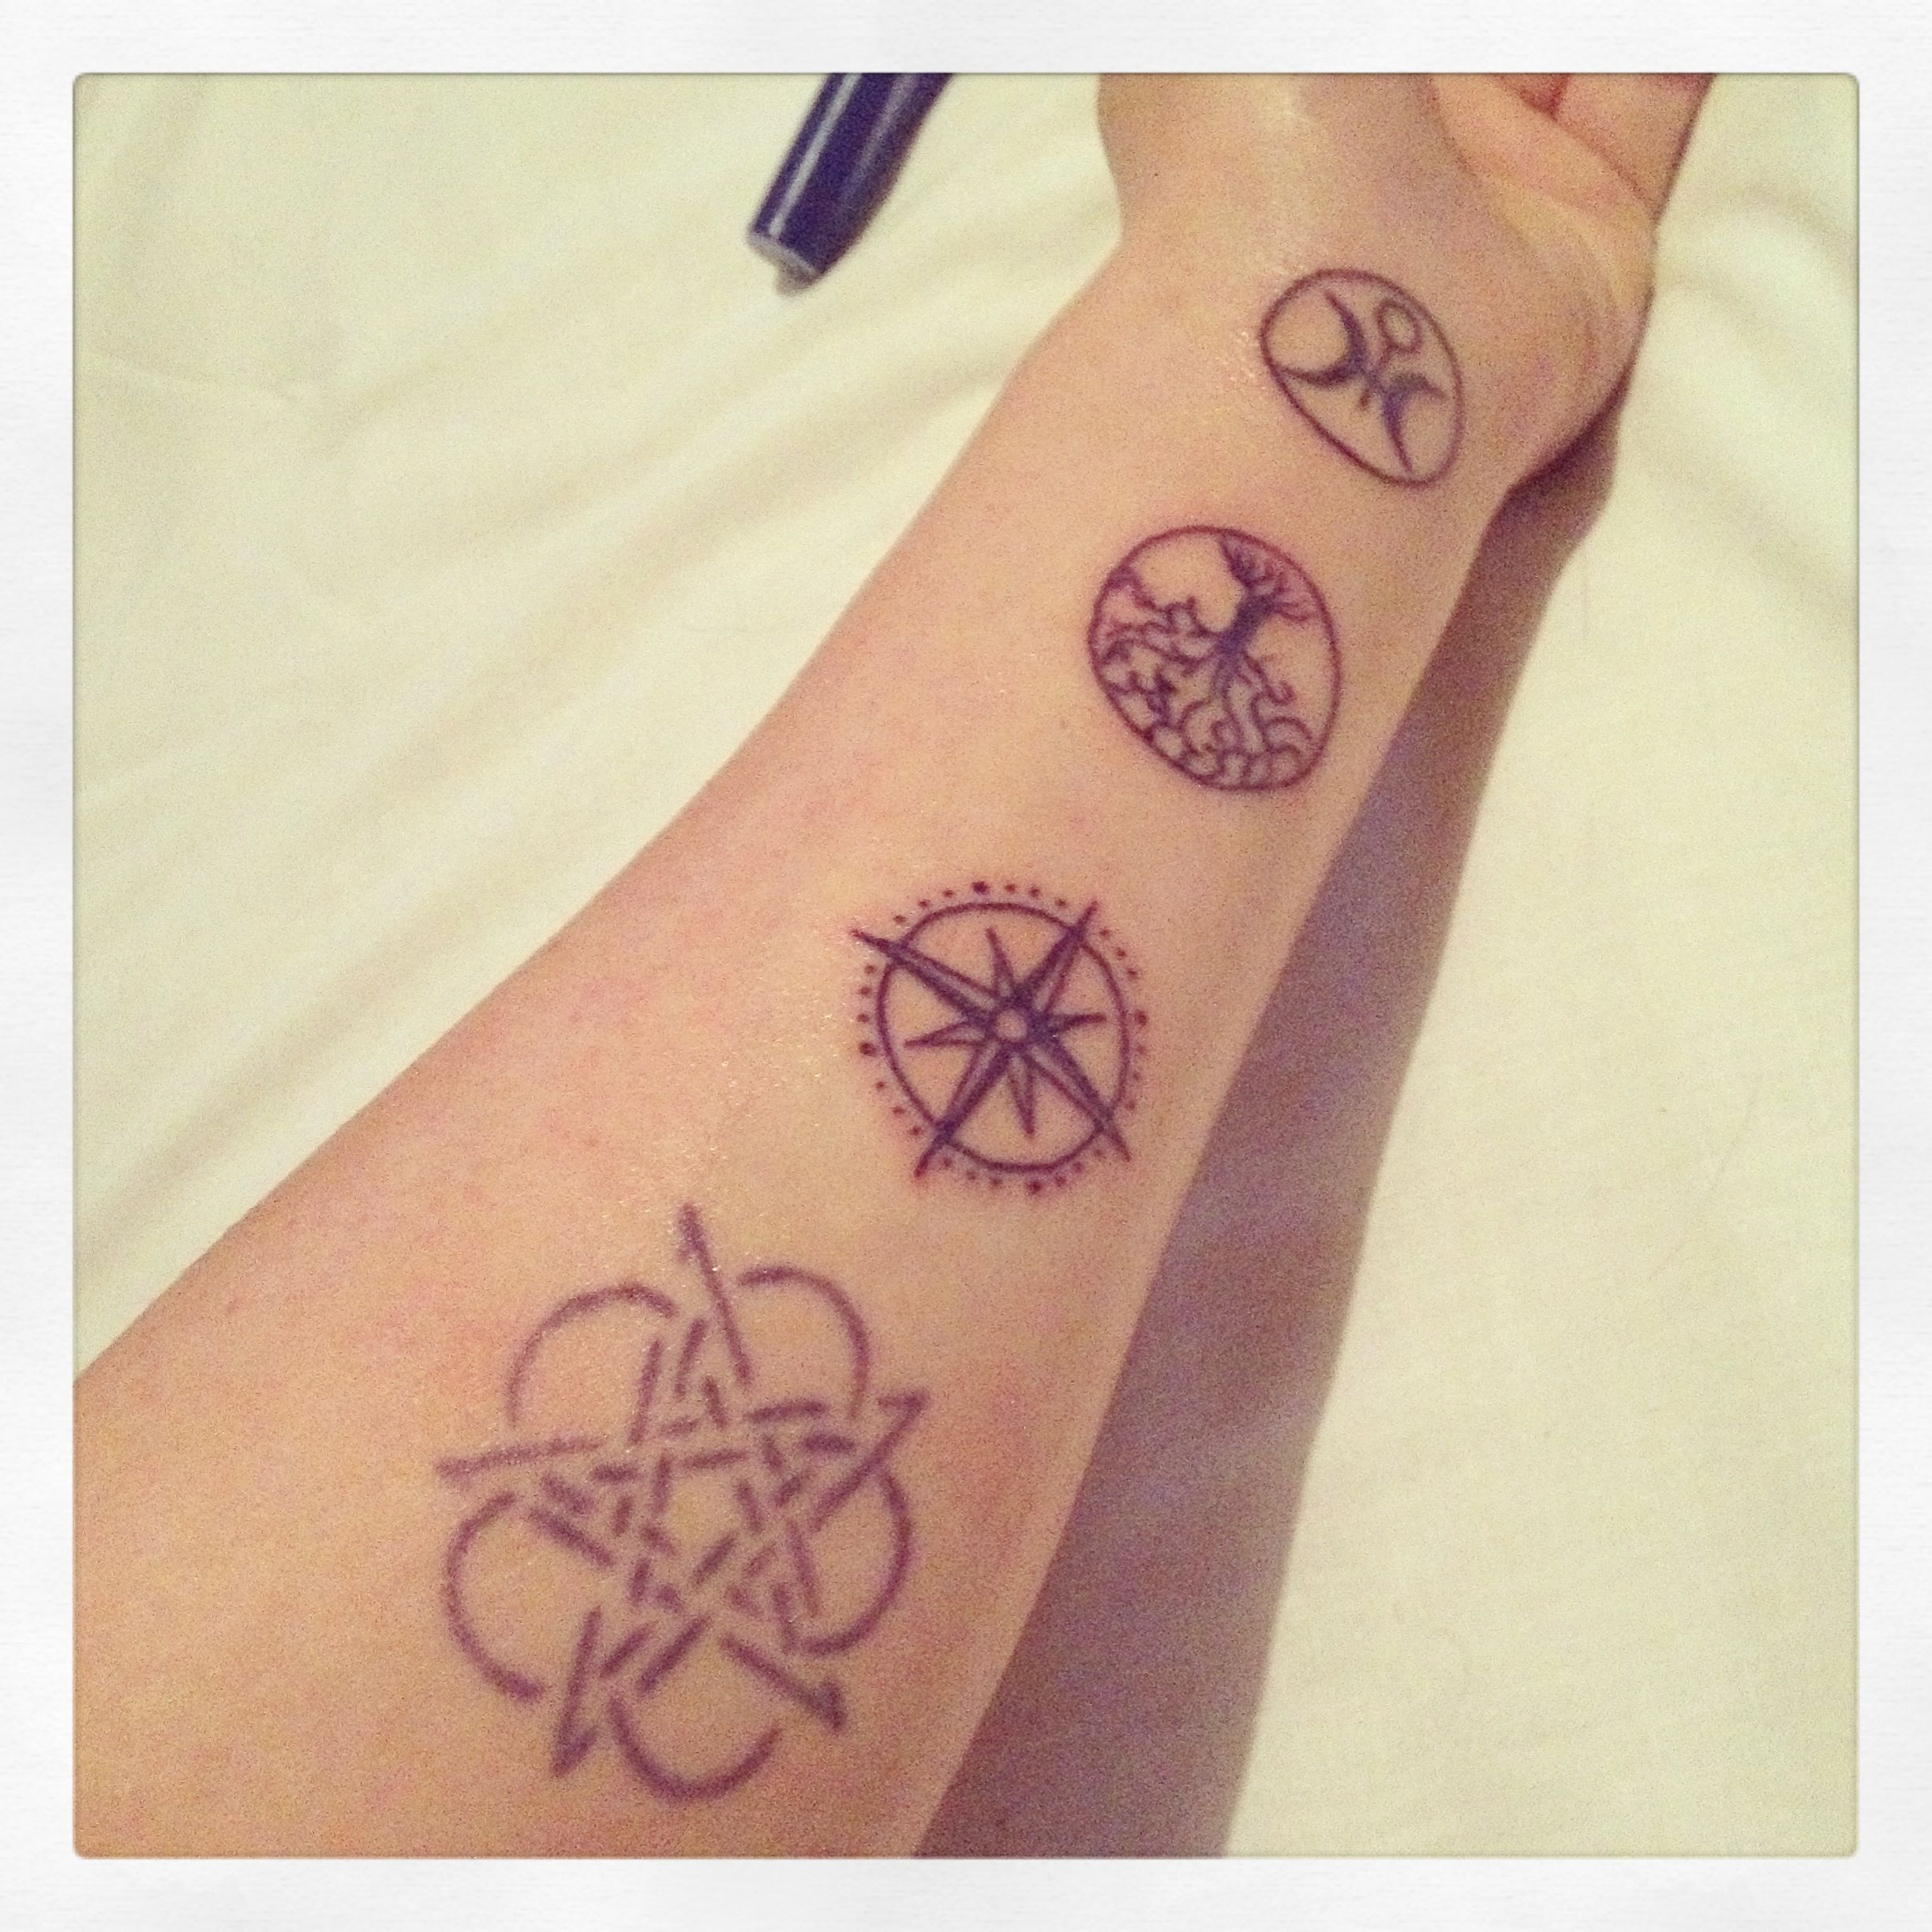 Meaningful Tattoos- Symbols Of Life